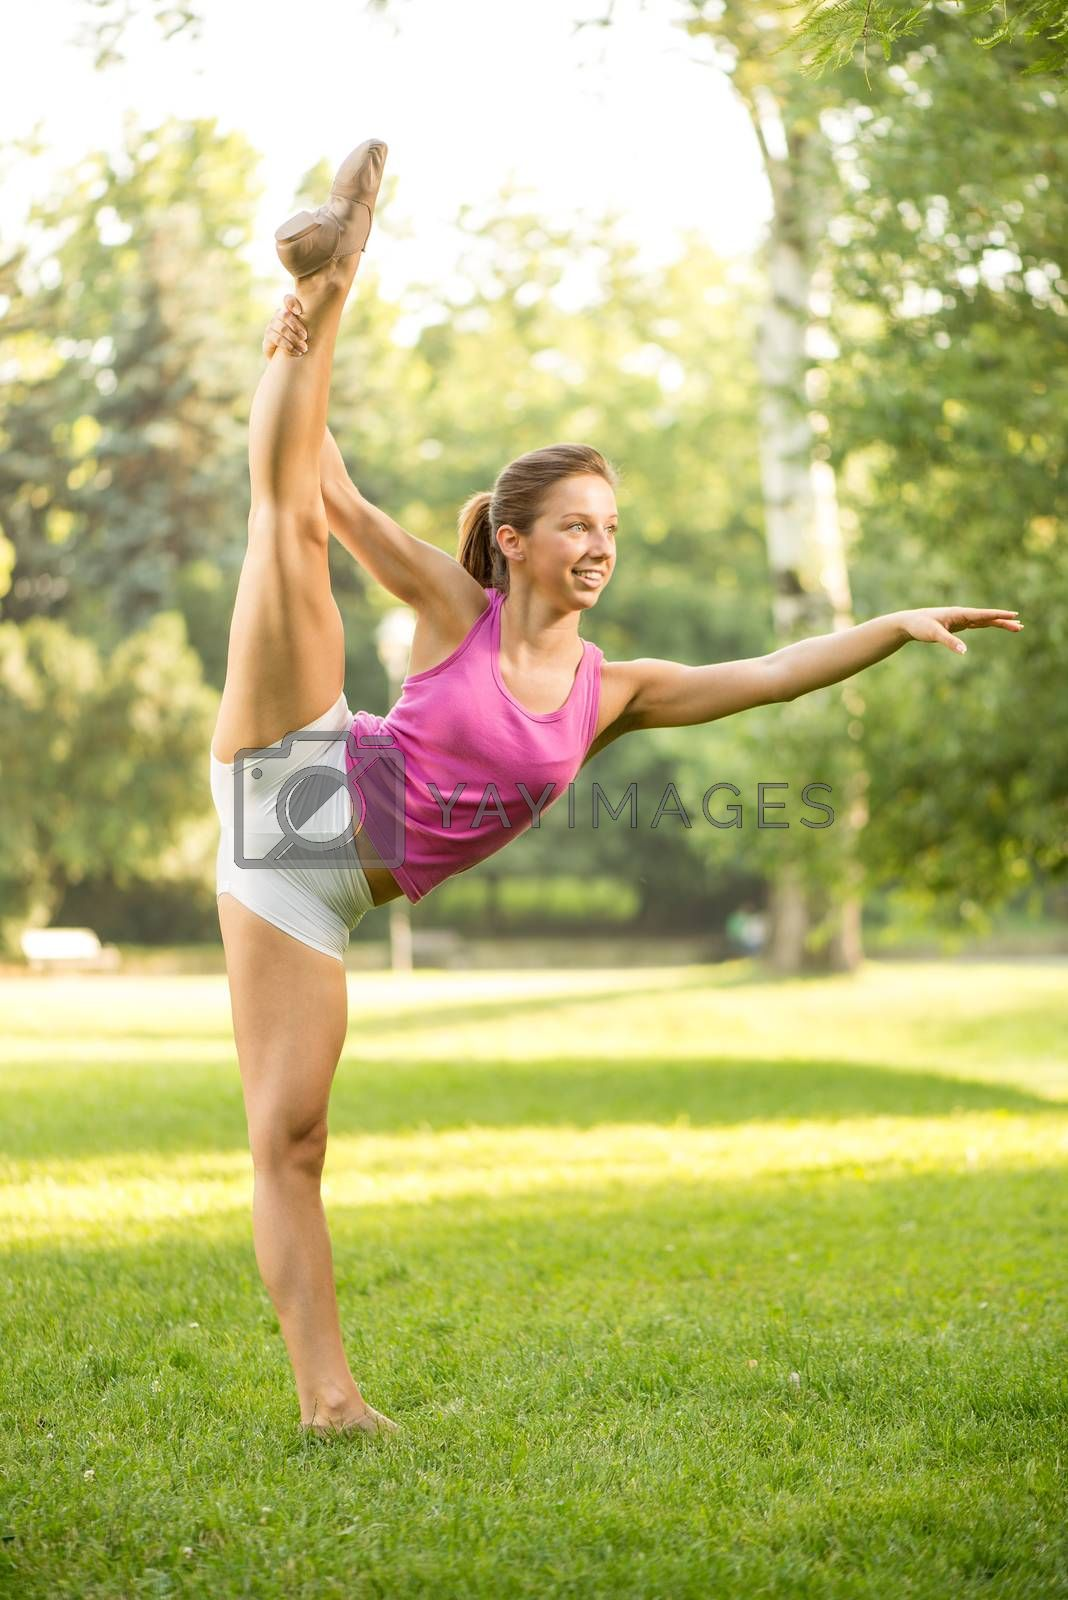 Cute girl doing stretching exercises in the park, standing on one leg.